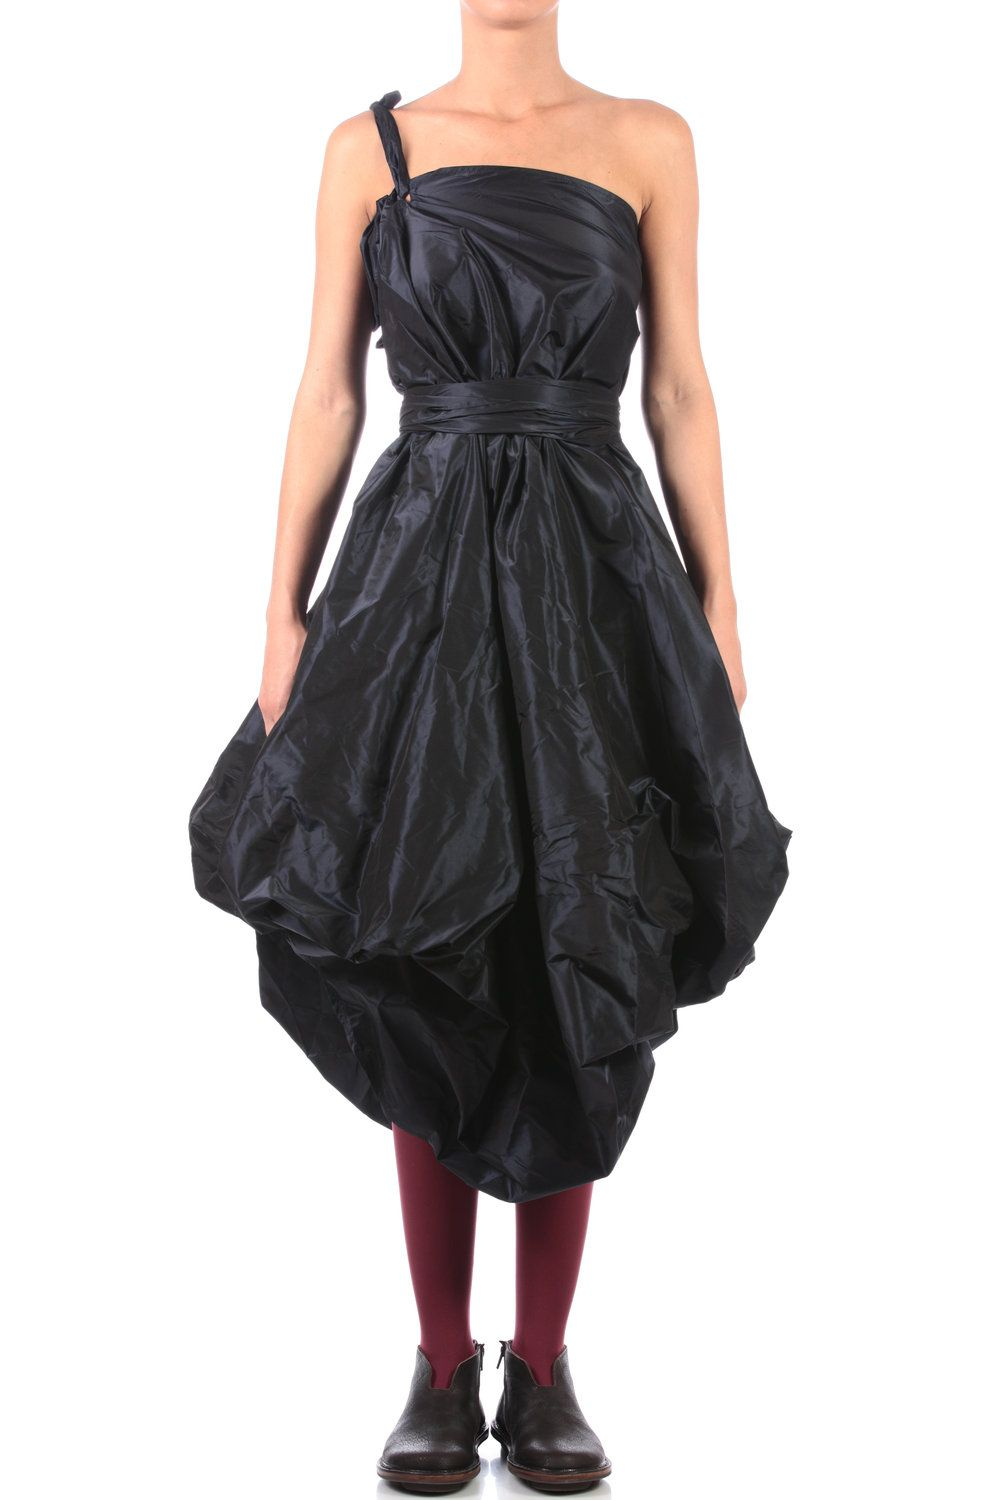 Daniela Gregis    shot silk taffeta dress skirt  full length flared skirt in shot silk taffeta, drapeable length with side buttons and eyelets, high self belt, wearable as a dress, with a single strap, wearable in various ways  1,160.00 €  100% silk